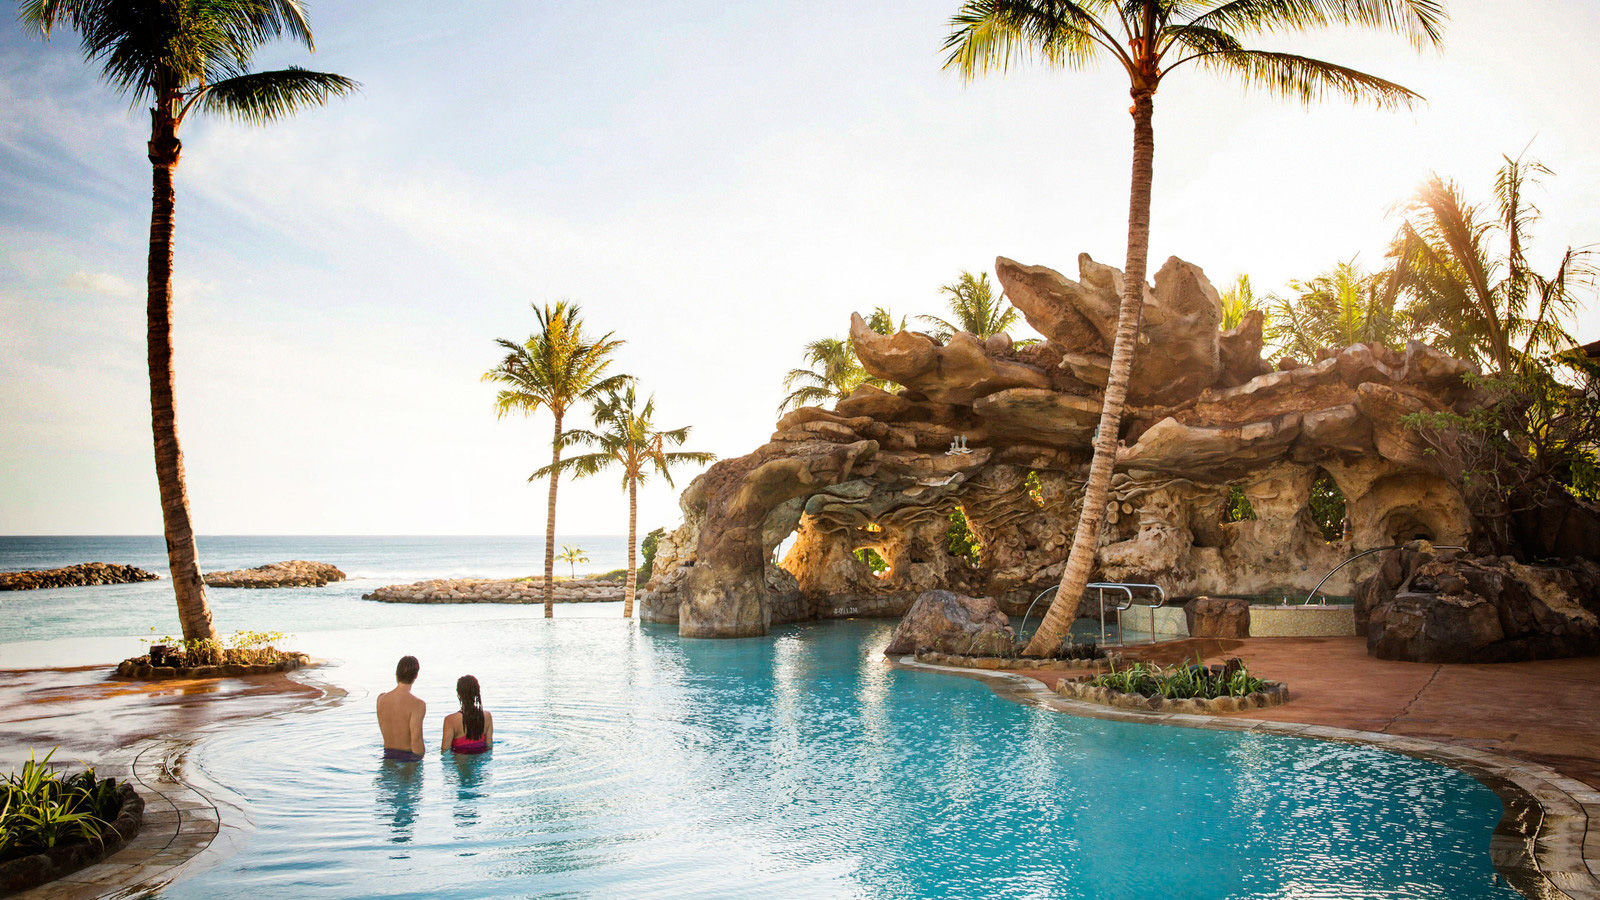 A couple in an infinity pool overlooking the ocean, with a whirlpool spa and grotto nearby